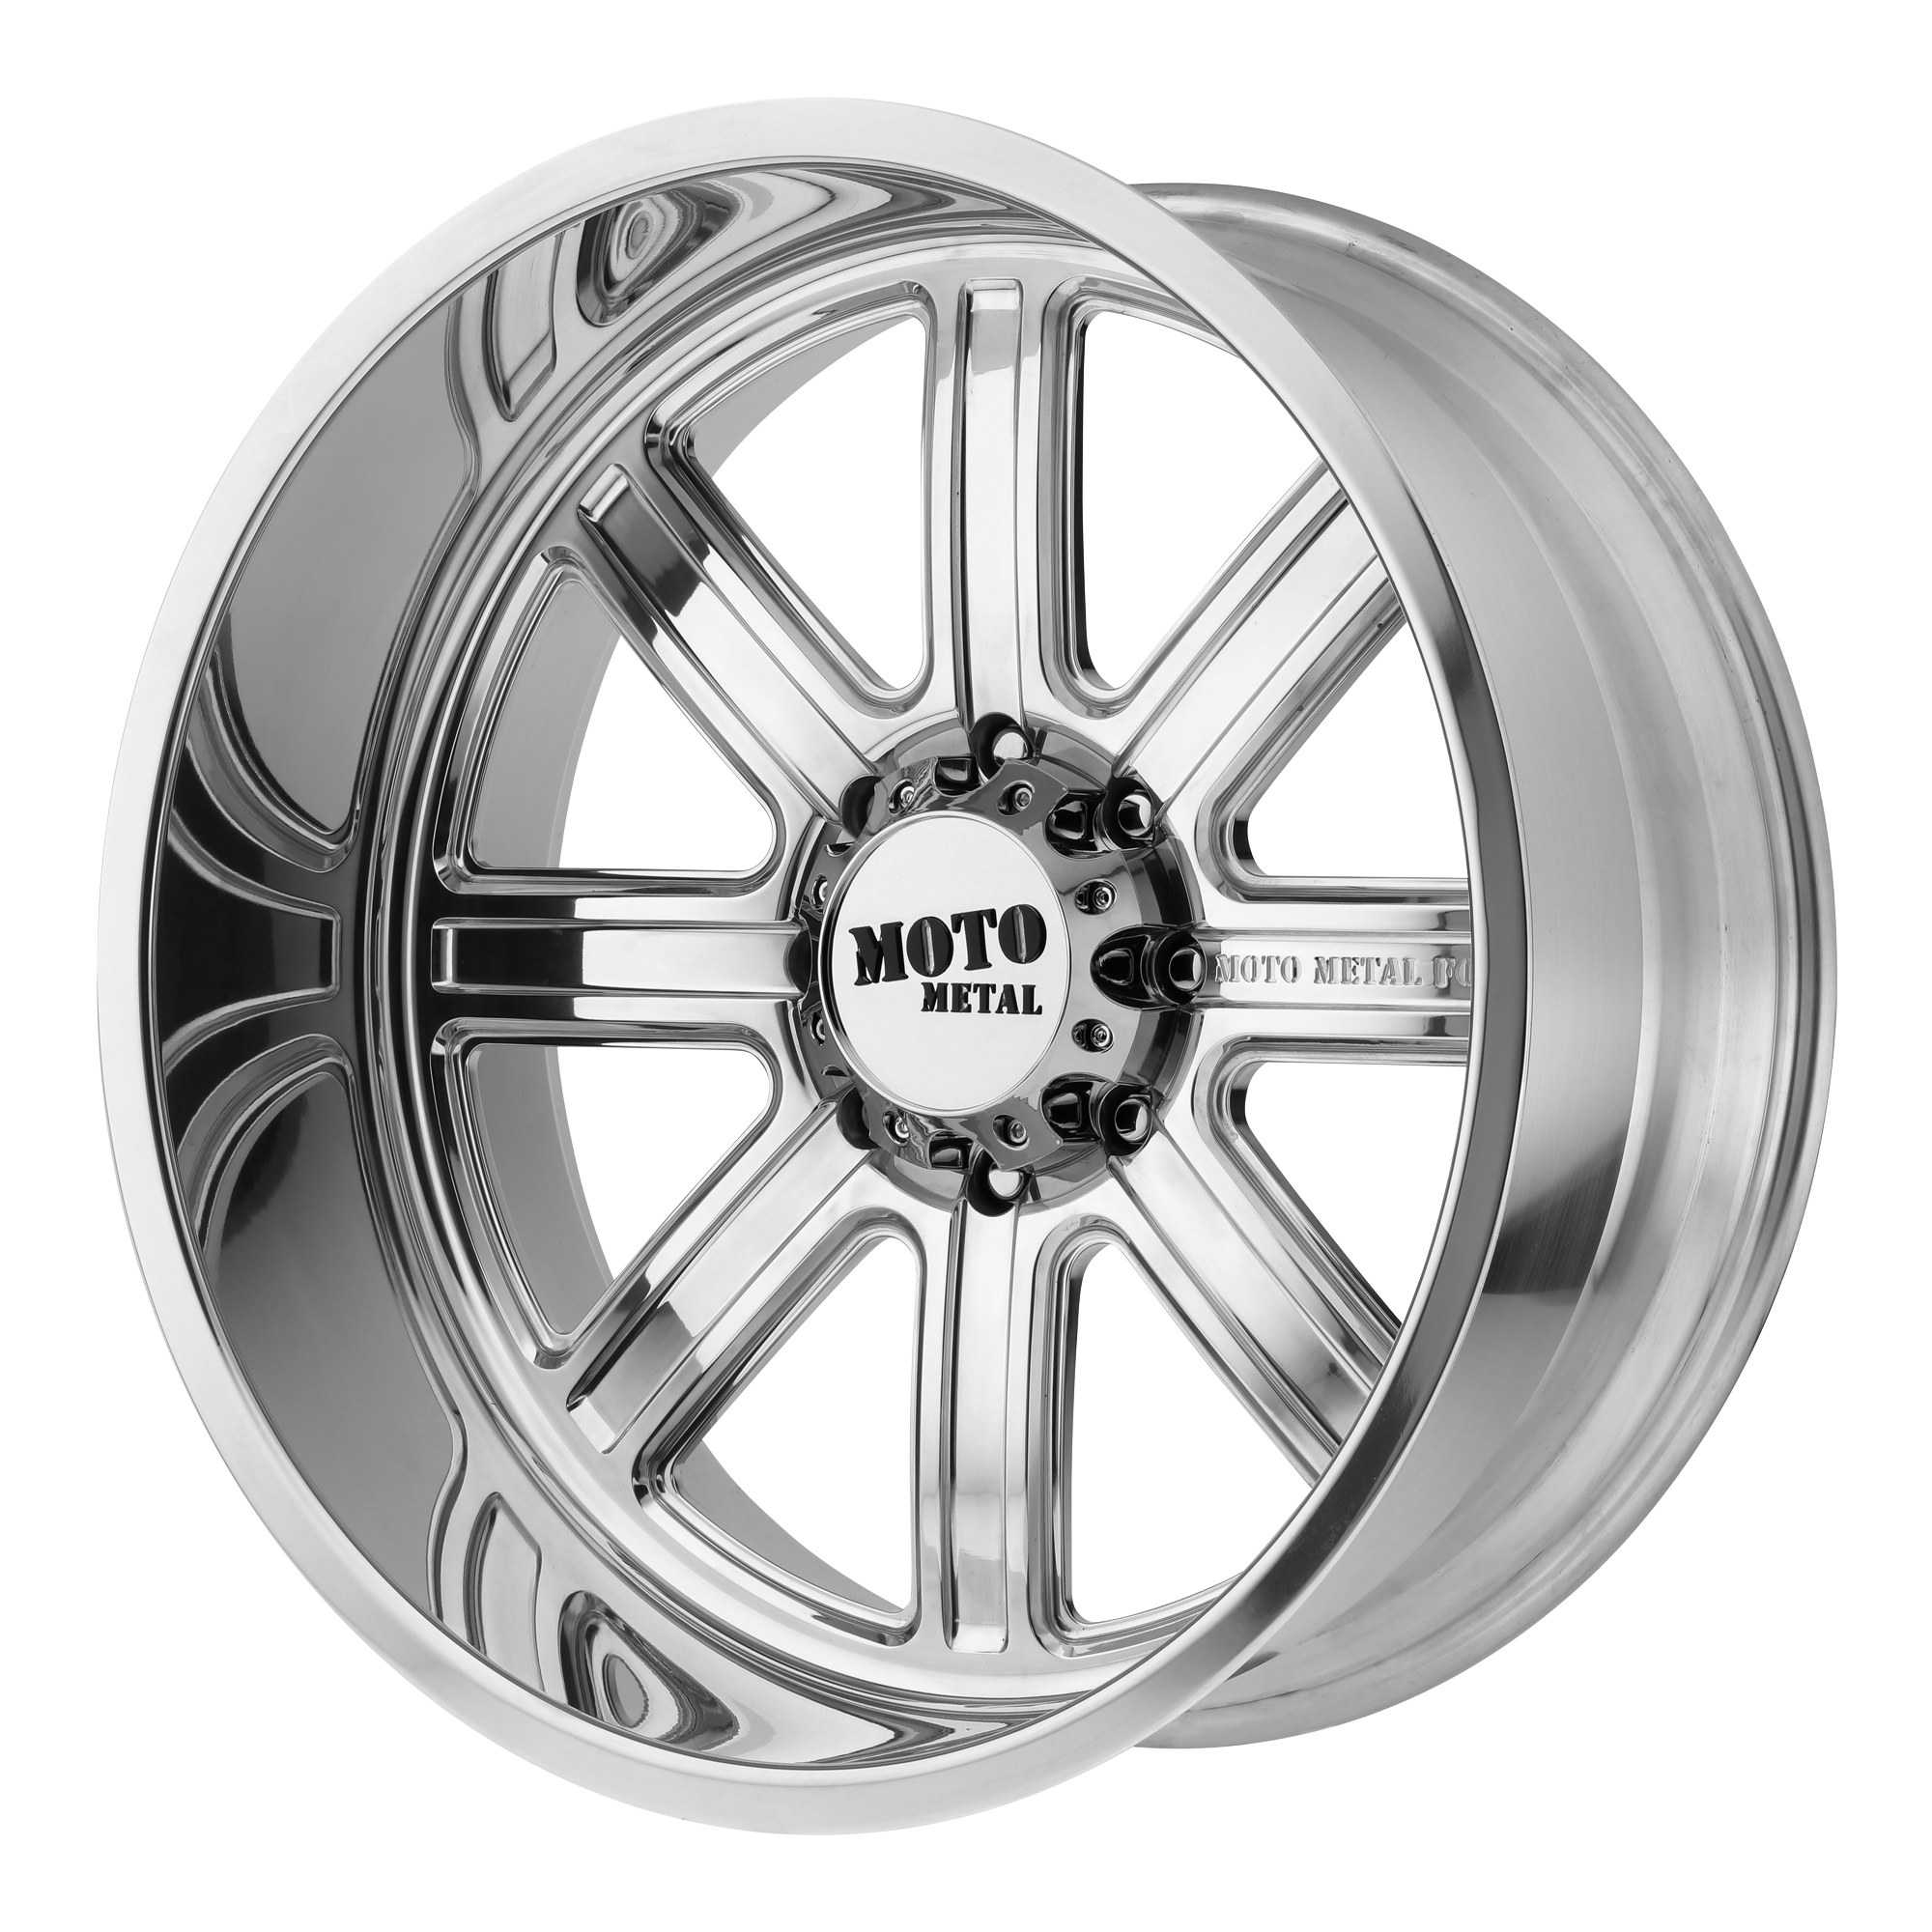 Moto Metal Offroad Wheels MO402 Polished